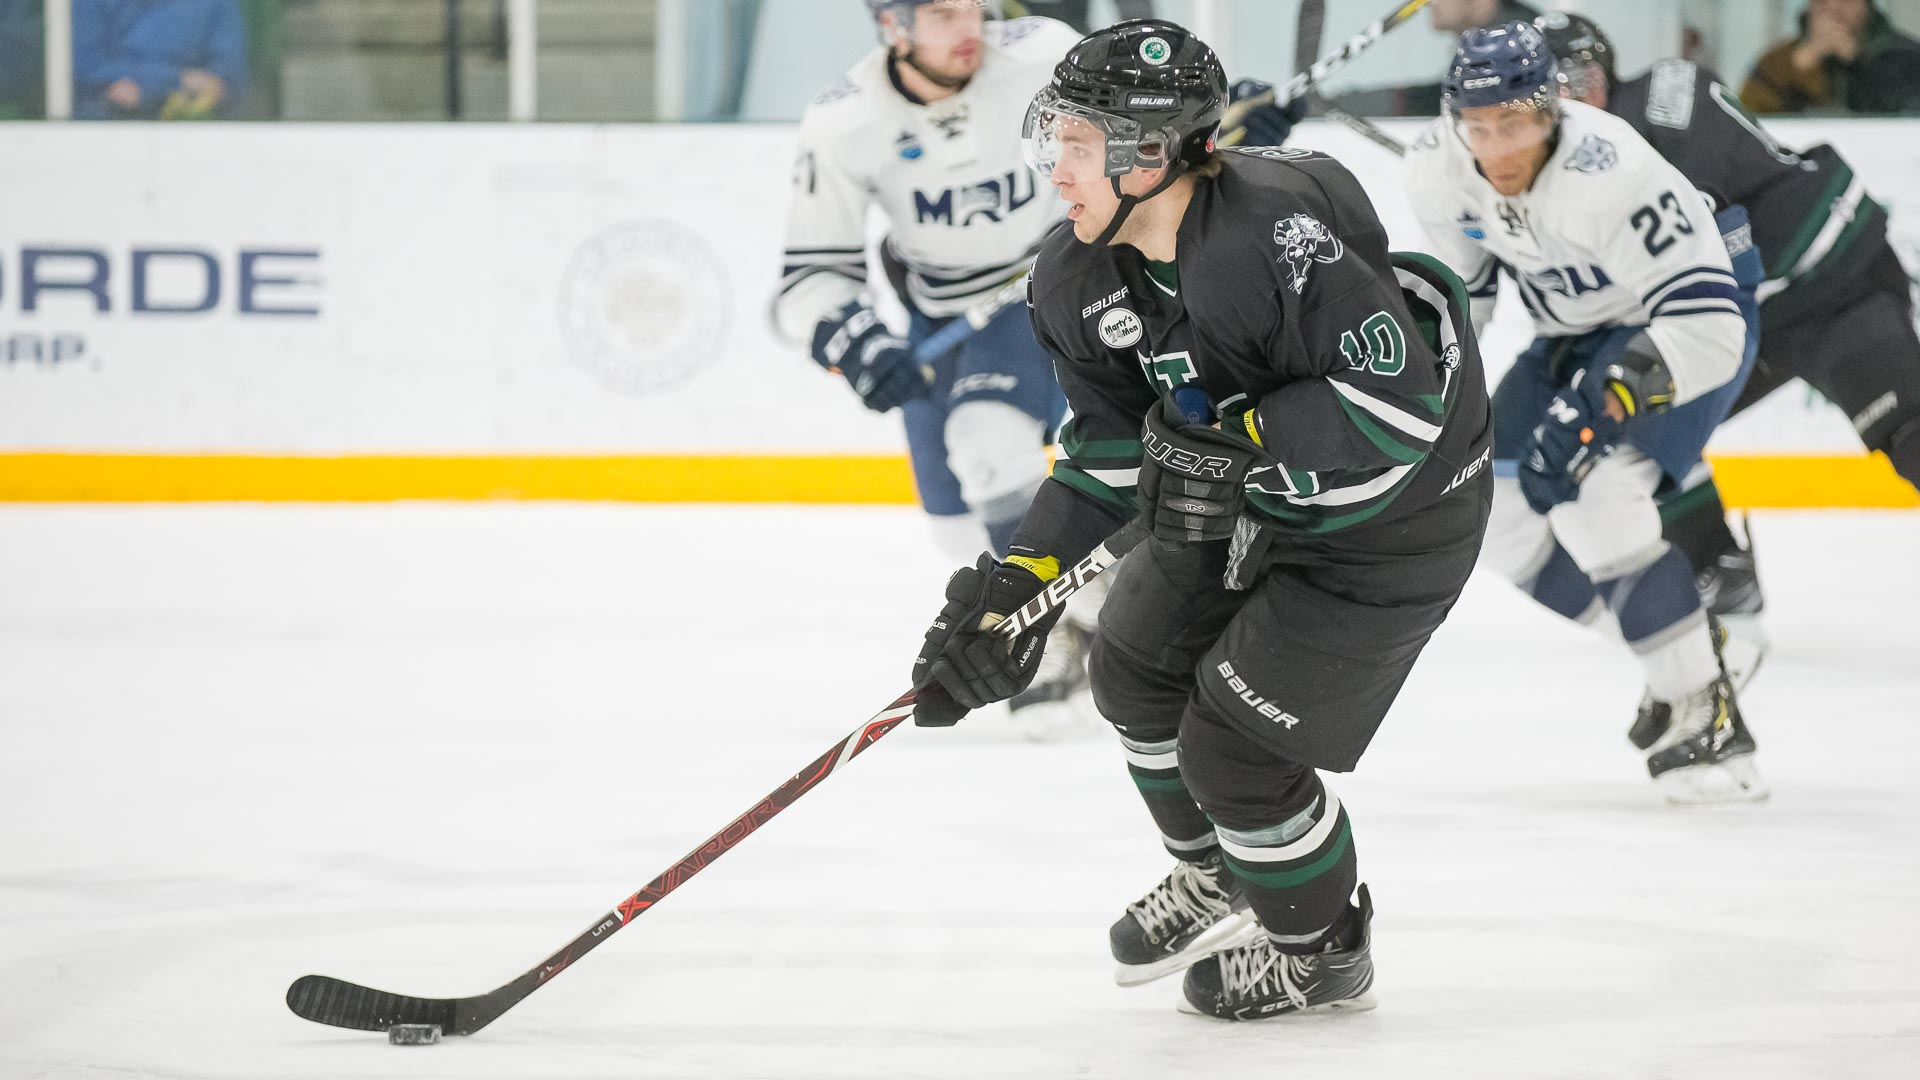 9f1a08e71f9 PREVIEW  Playoffs begin at home for Huskies - University of ...